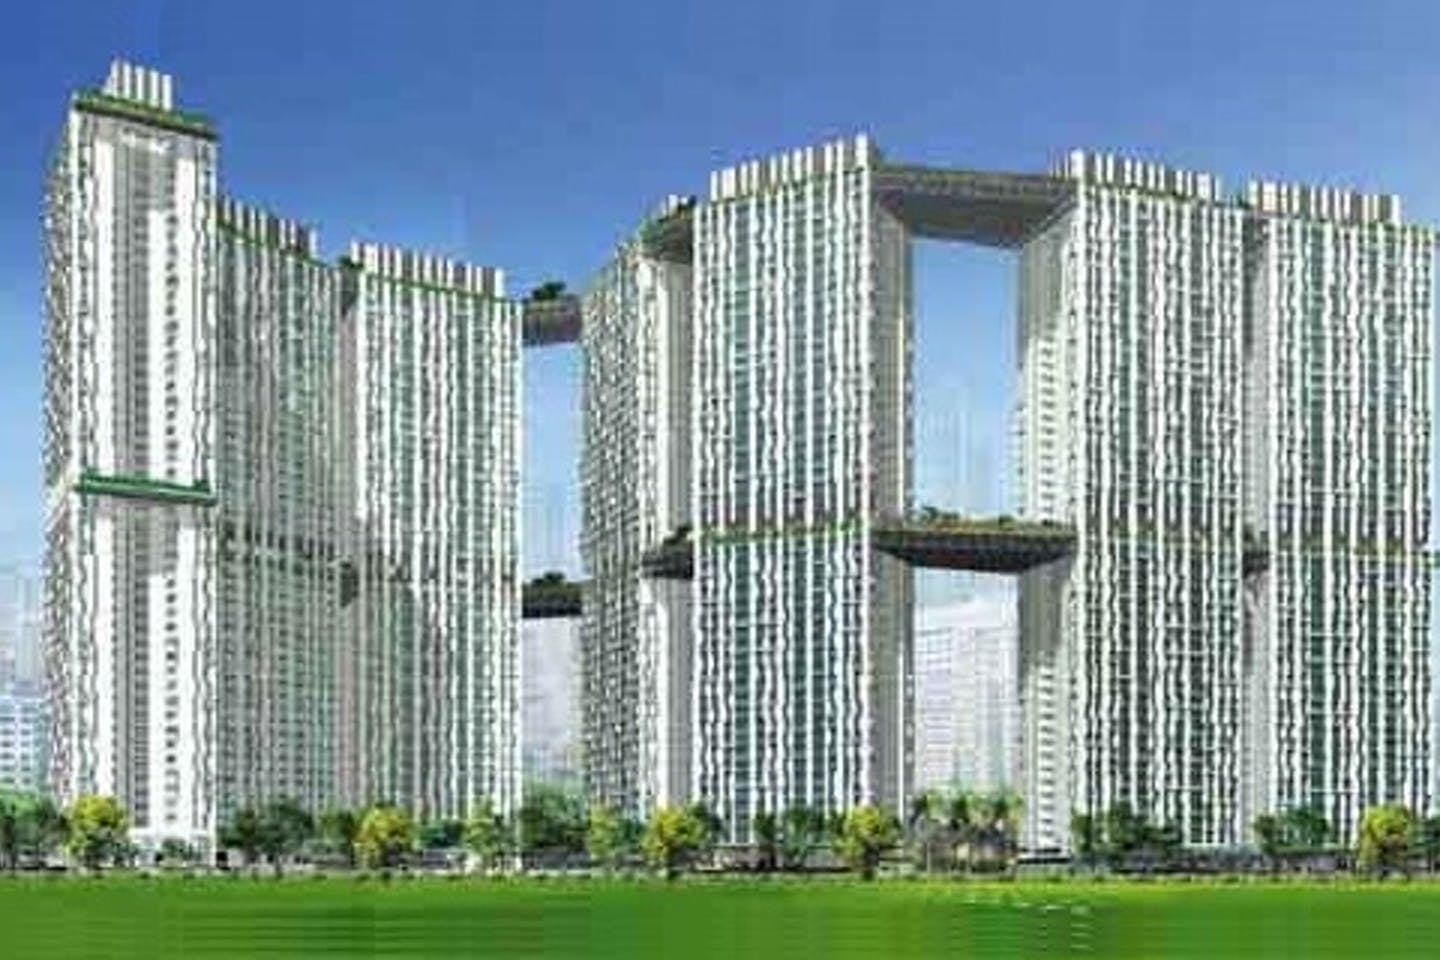 Pinnacle Duxton pinnacleduxtonresalecom